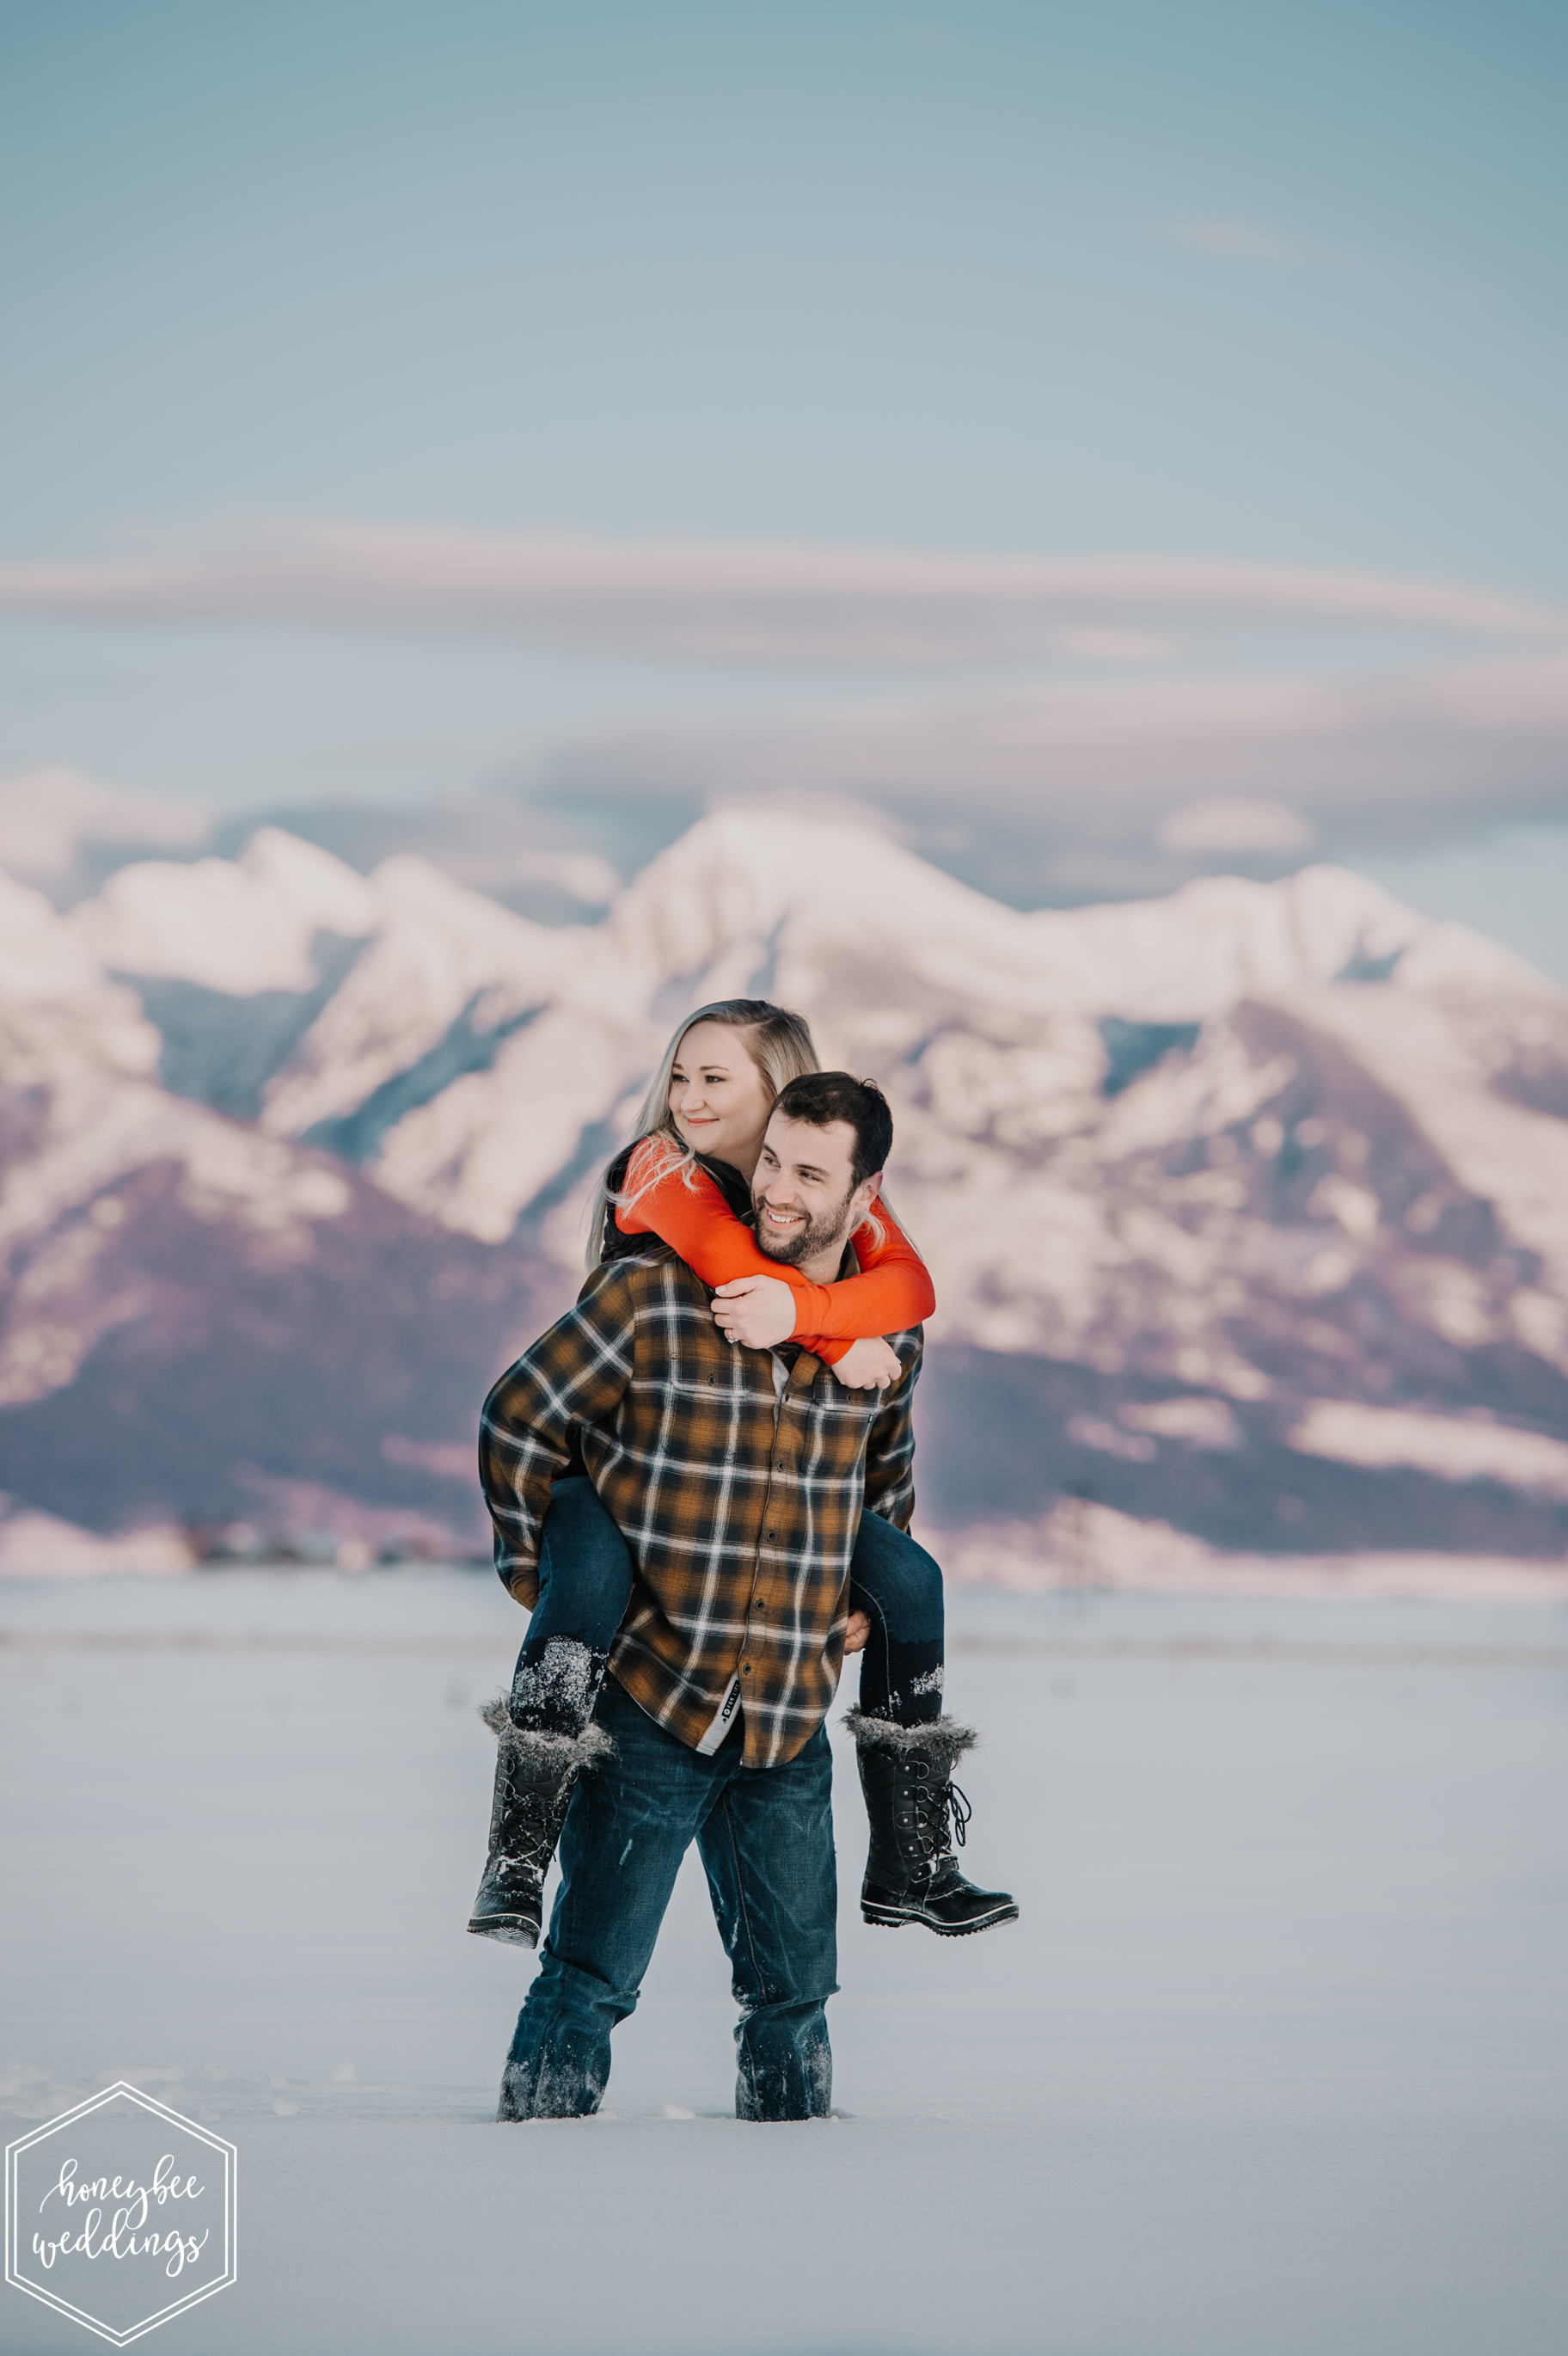 059Montana Wedding Photographer_Winter Engagement_Polson_Jessica & Brian_March 09, 2019-97.jpg